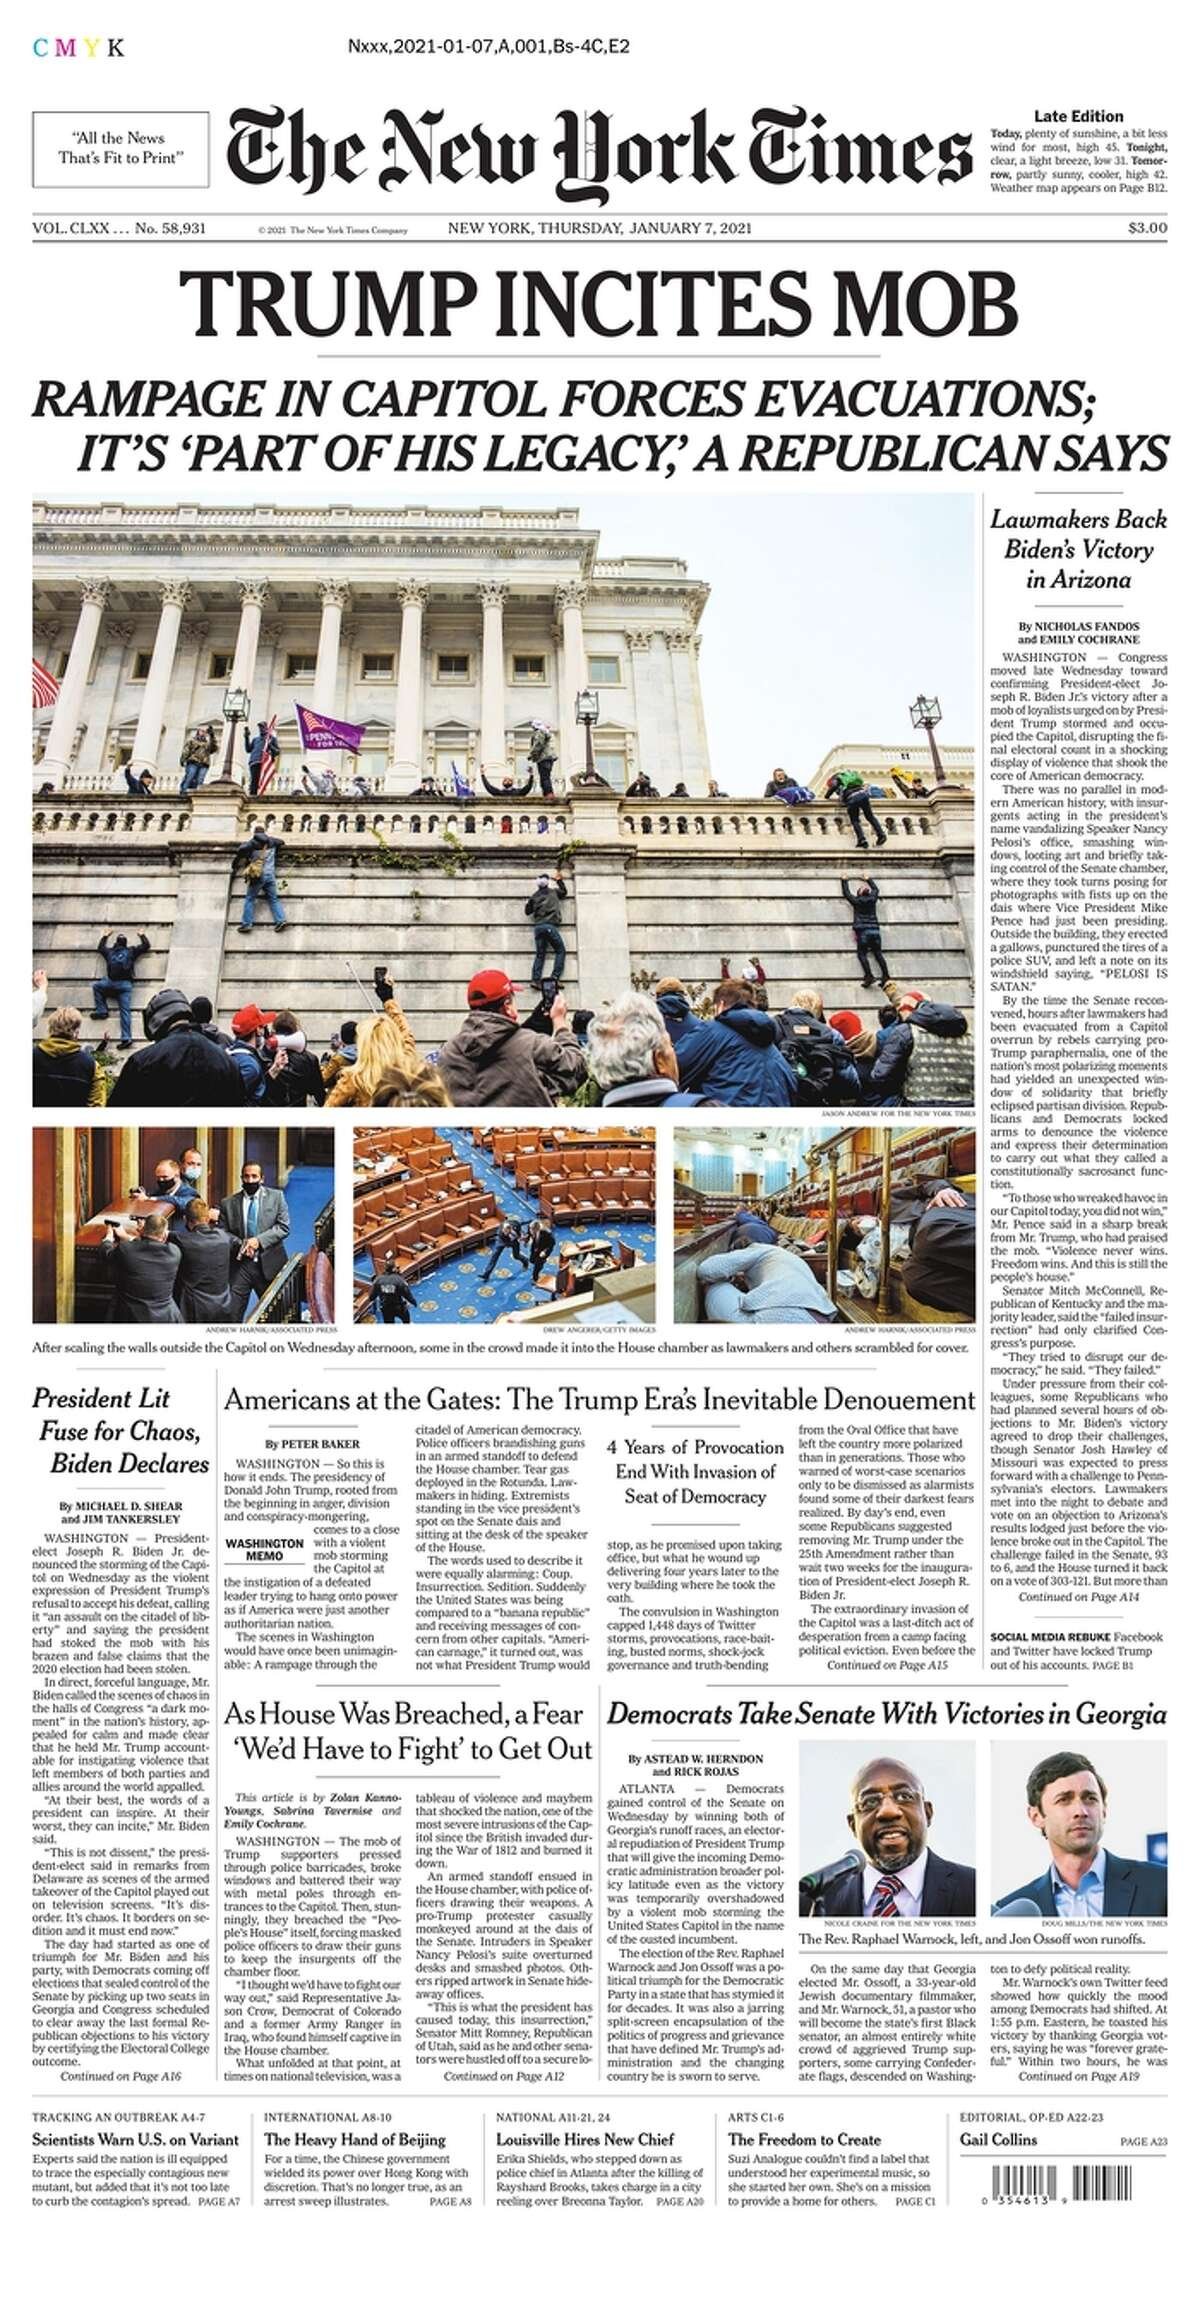 The Jan. 7 front page of the New York Times.